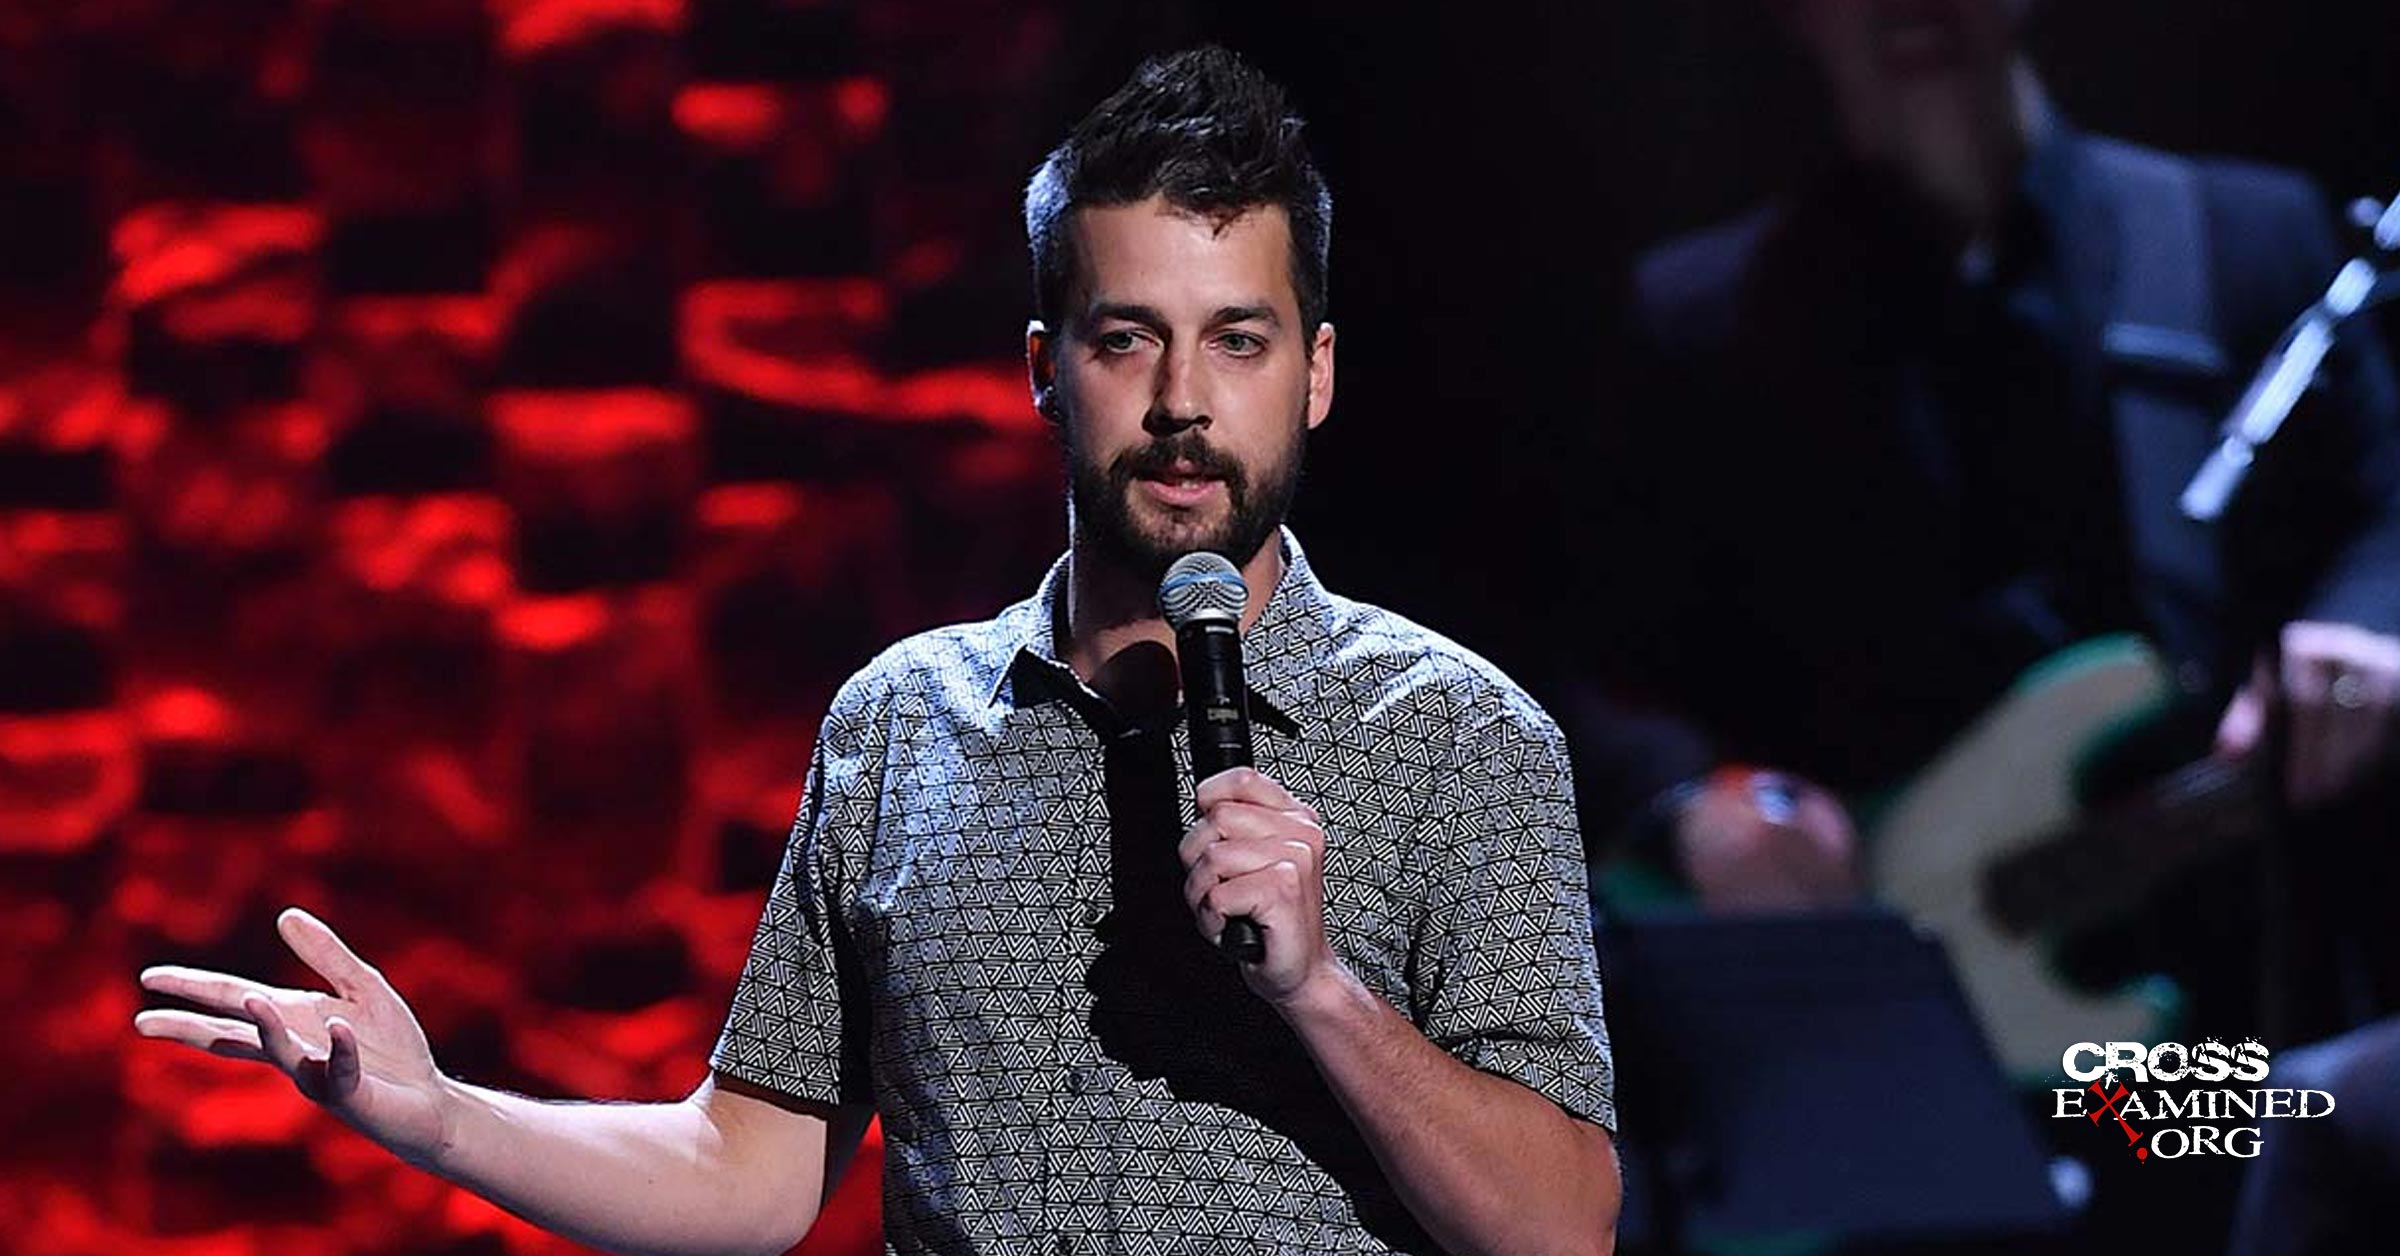 Reactions to John Crist's Moral Failings Demonstrate Our Culture's Confusion about Christianity